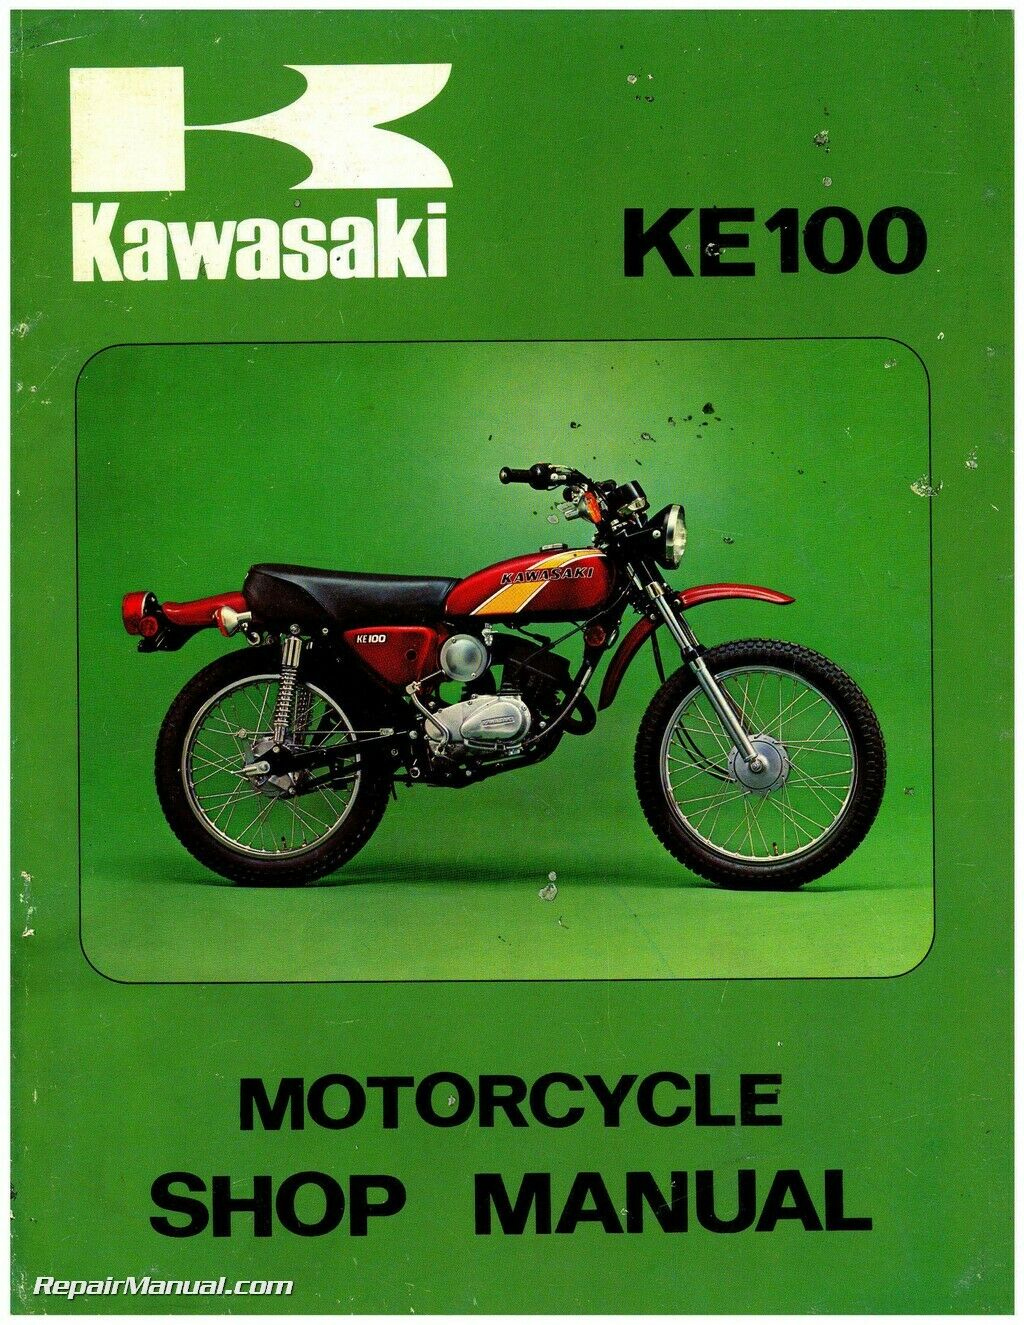 1971-1981 Kawasaki G5 KE100 Motorcycle Service Manual 1 of 1Only 4  available See More